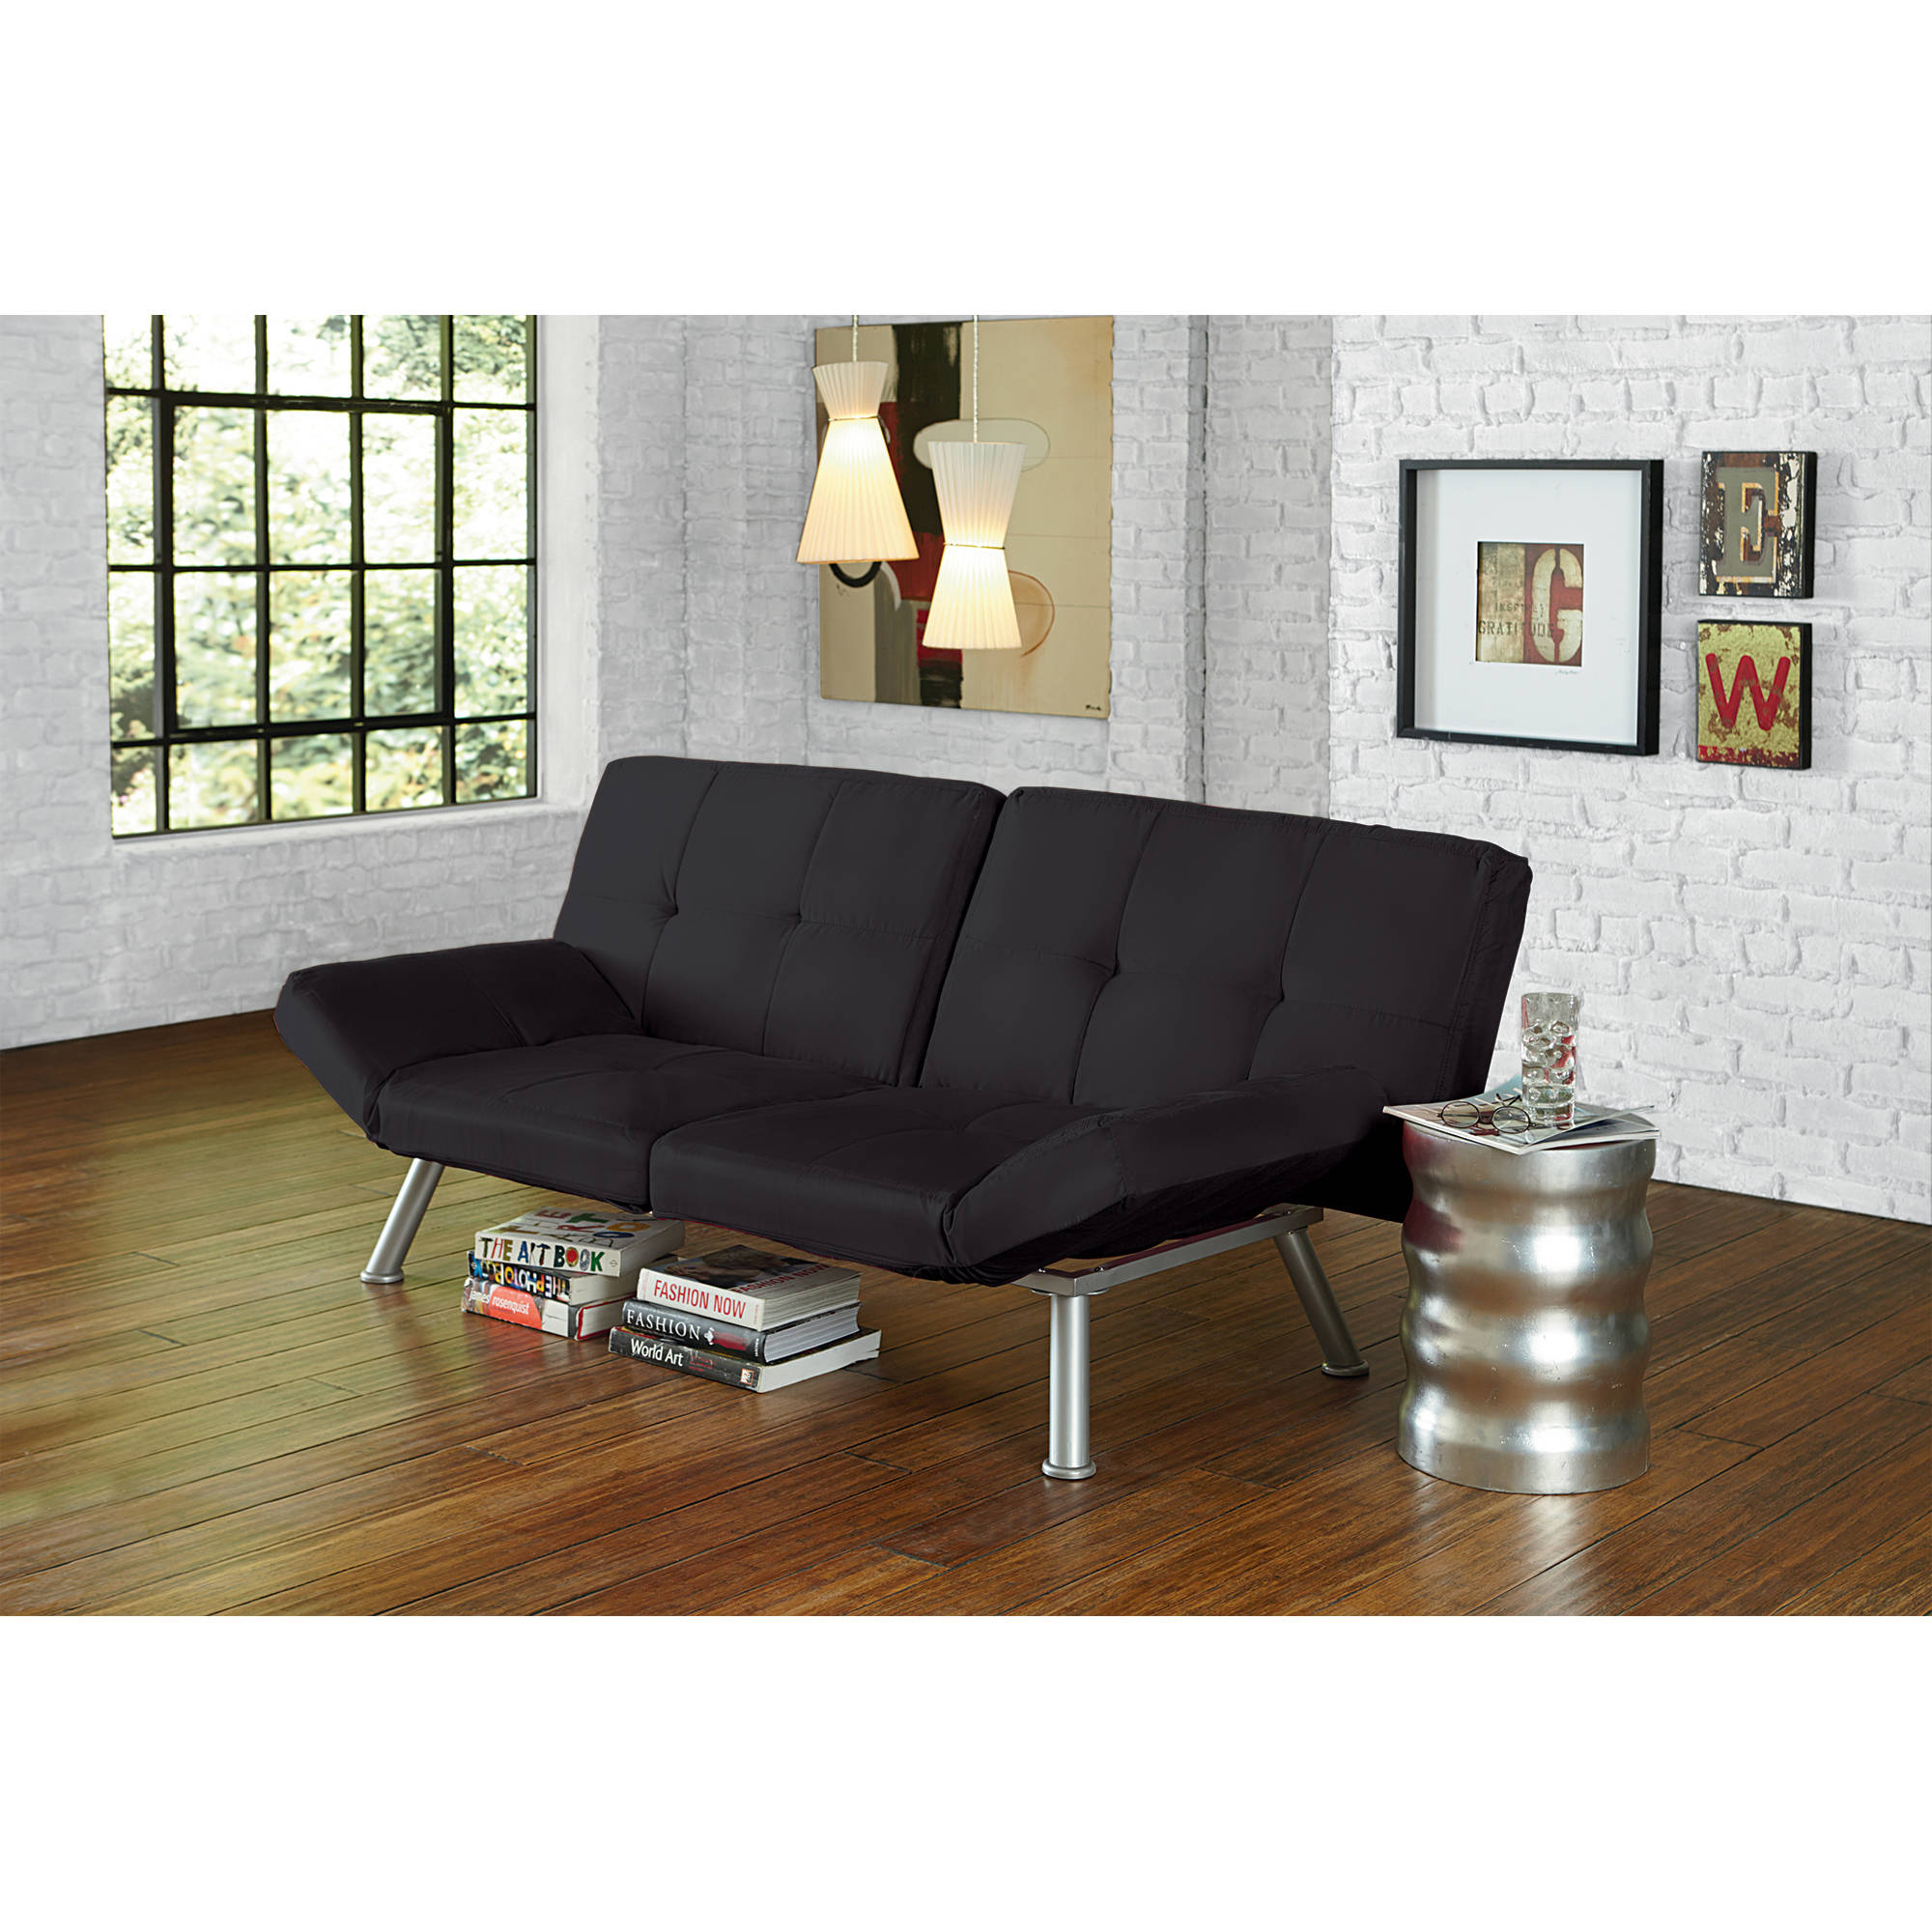 Mainstays Contempo Futon Multiple Colors Walmart